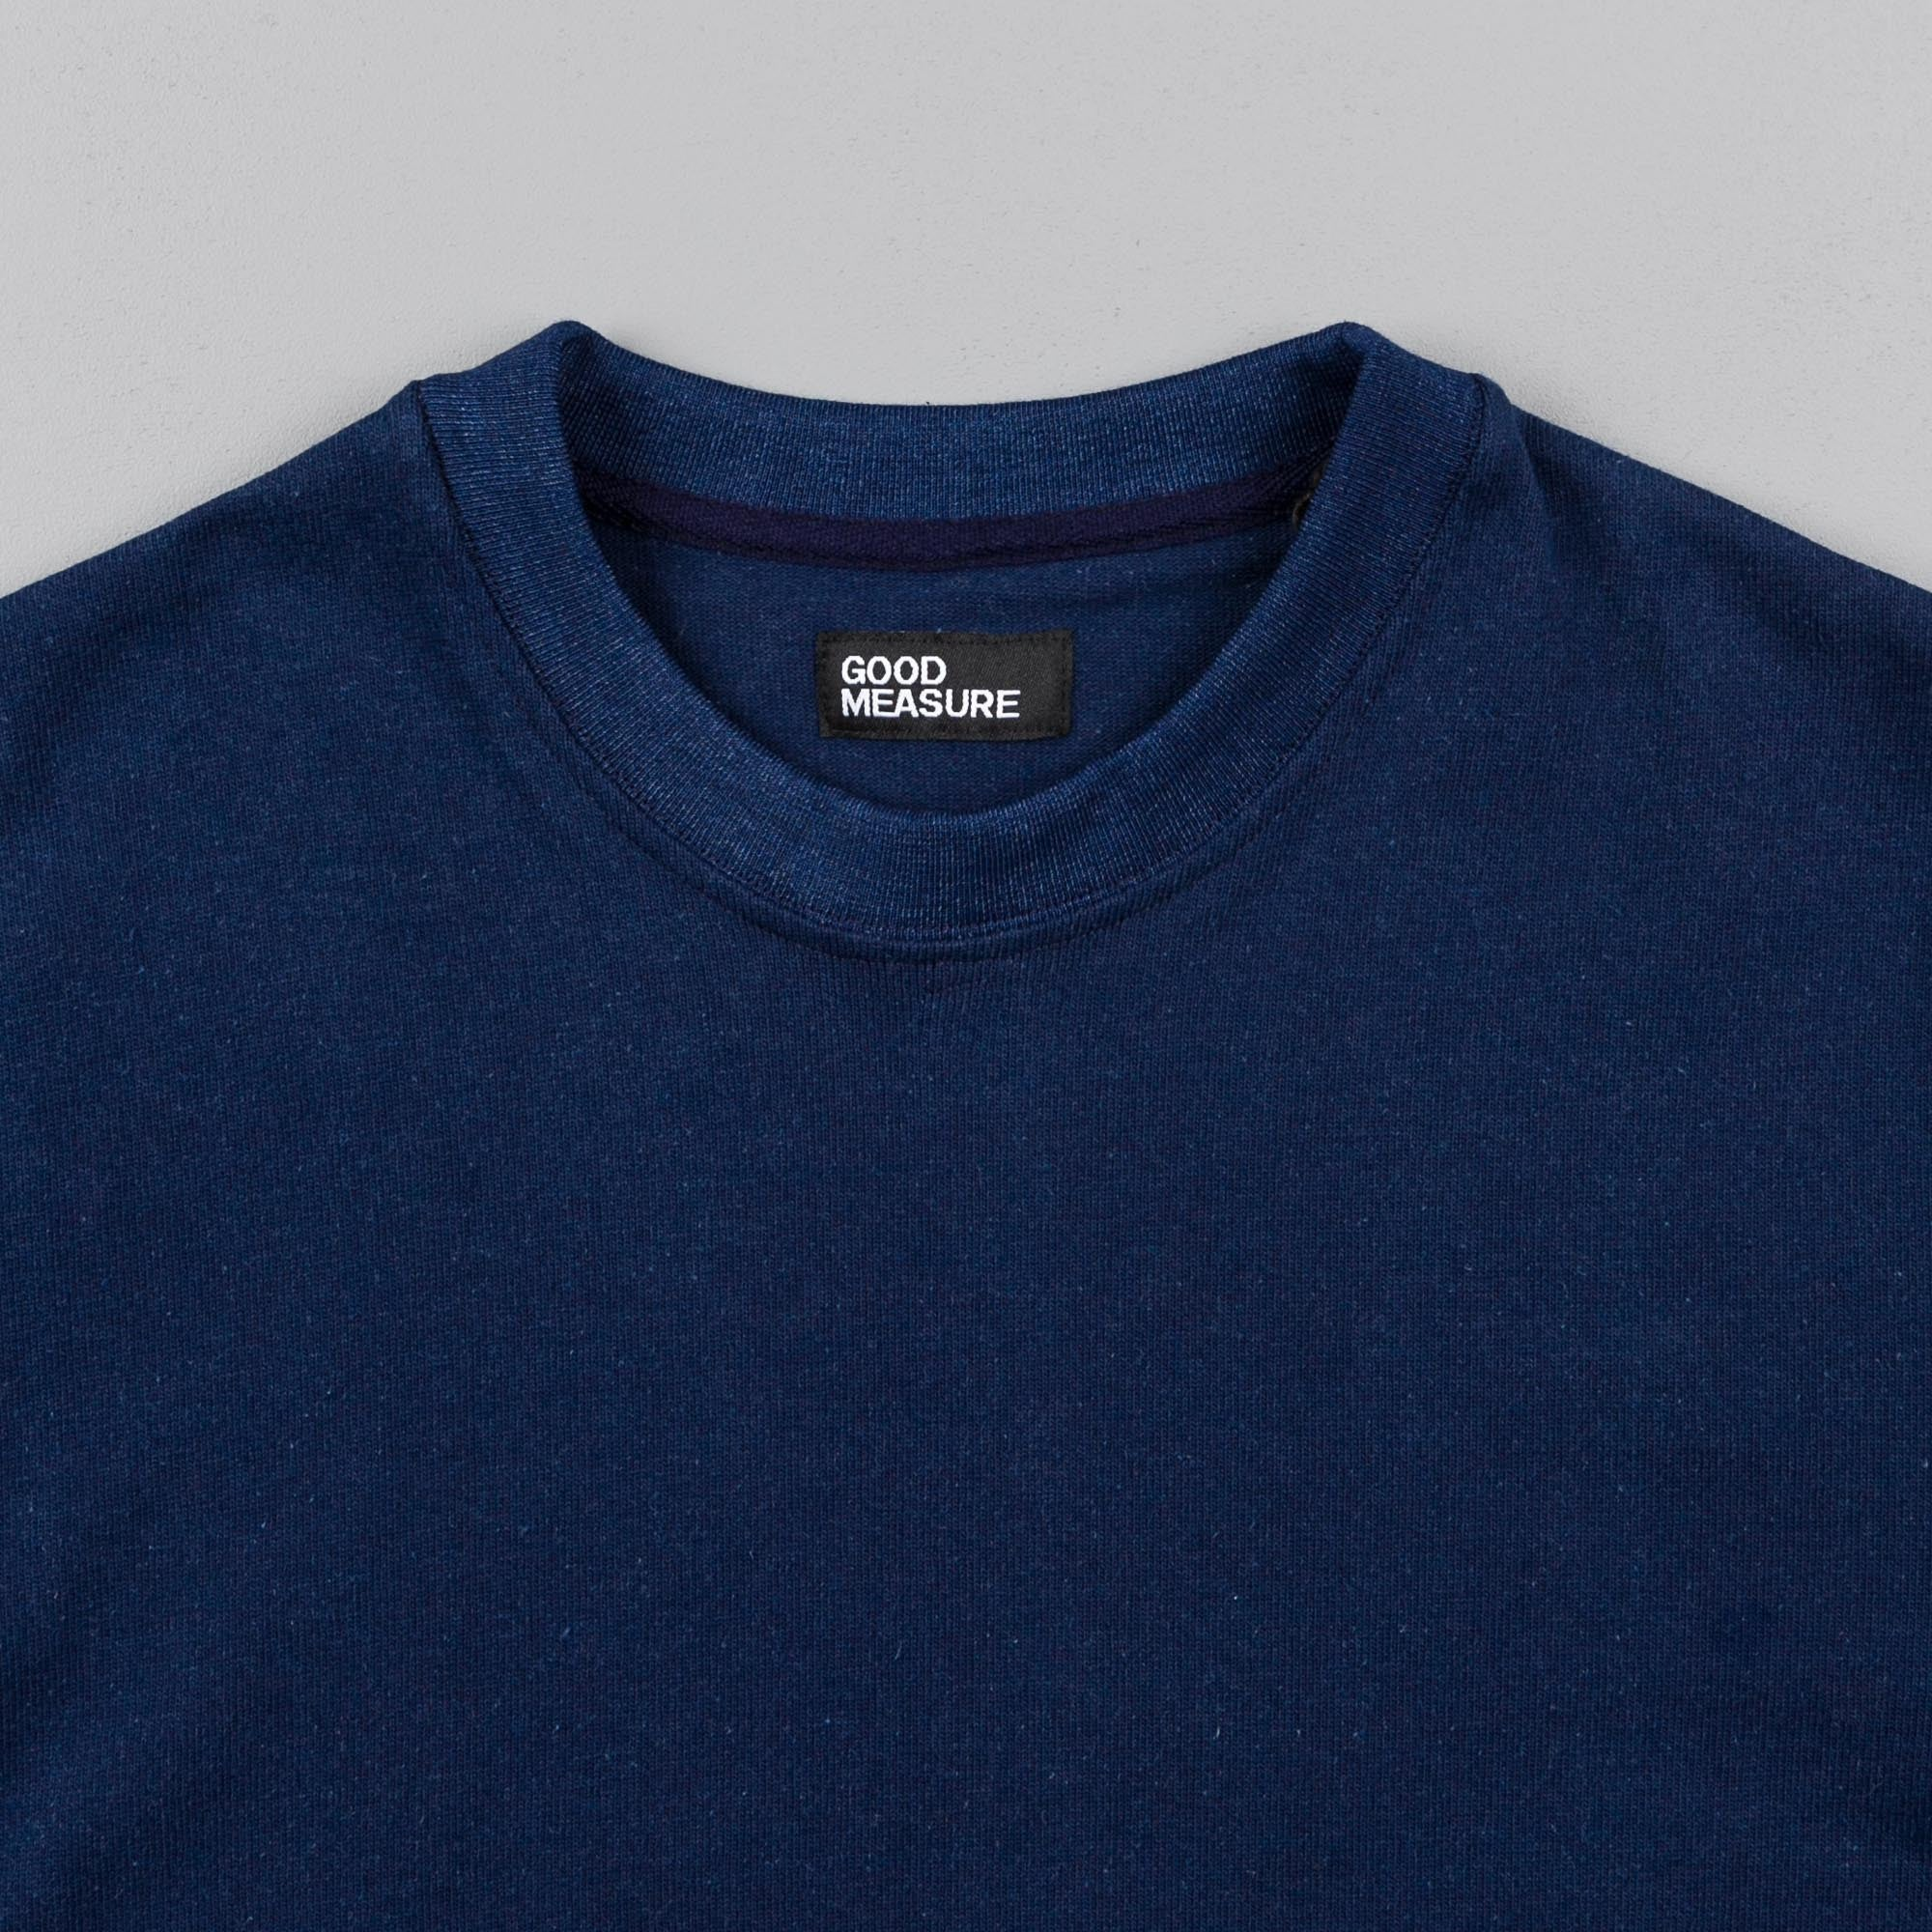 Good Measure M-2 T-Shirt - Indigo